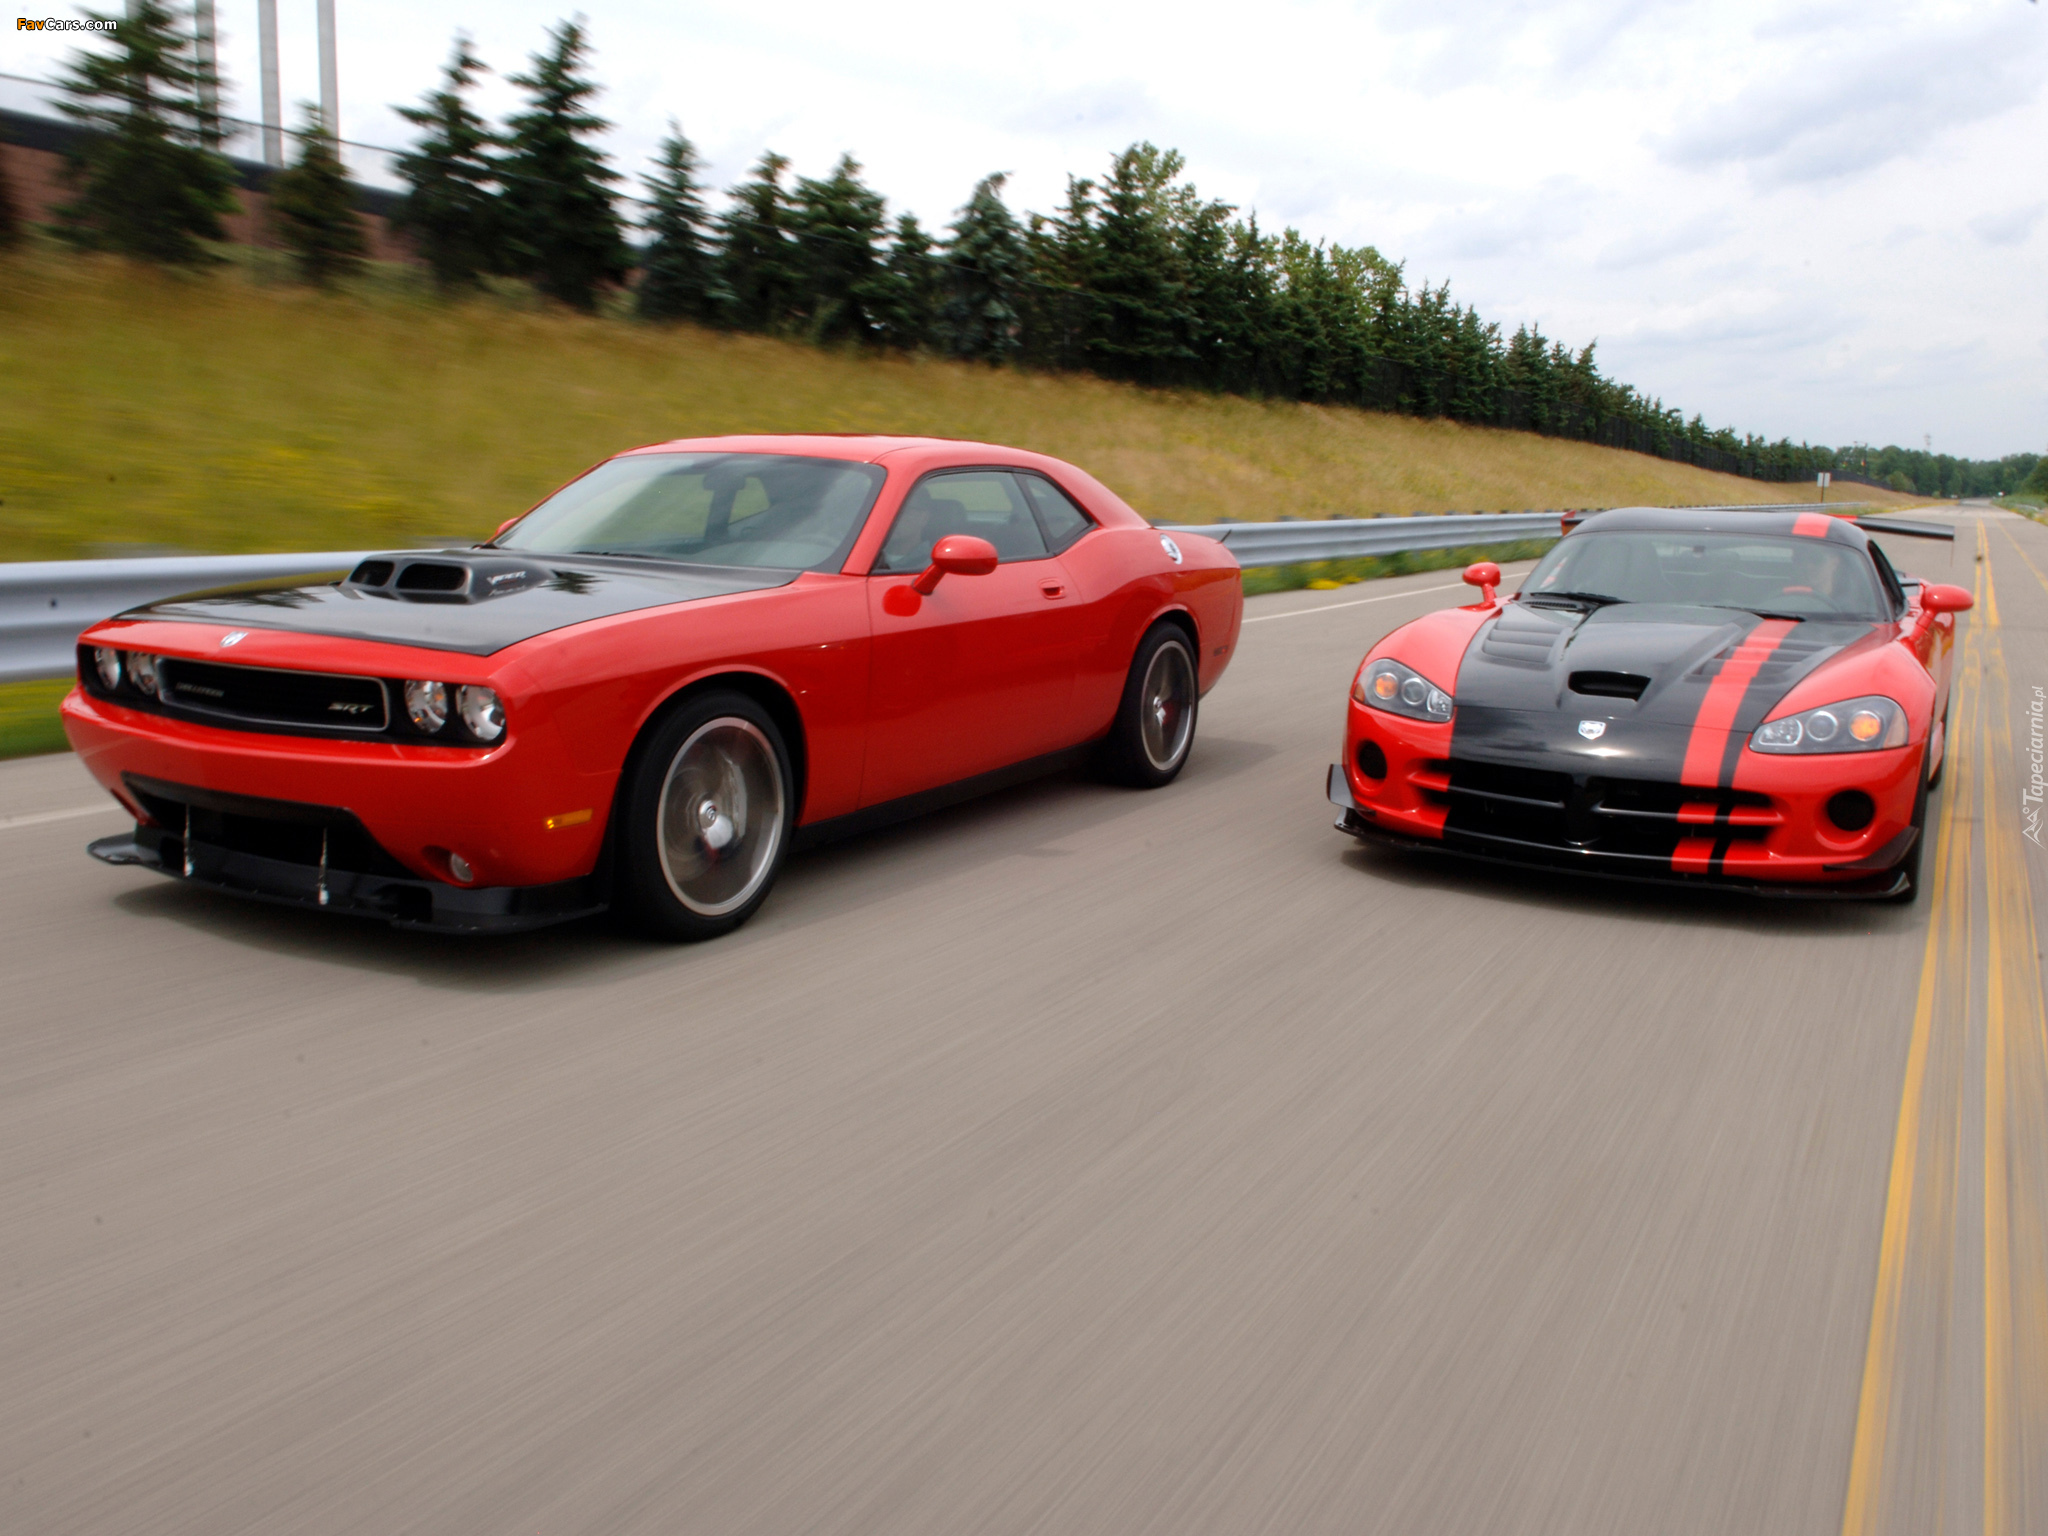 Chrysler viper vs dodge viper #2